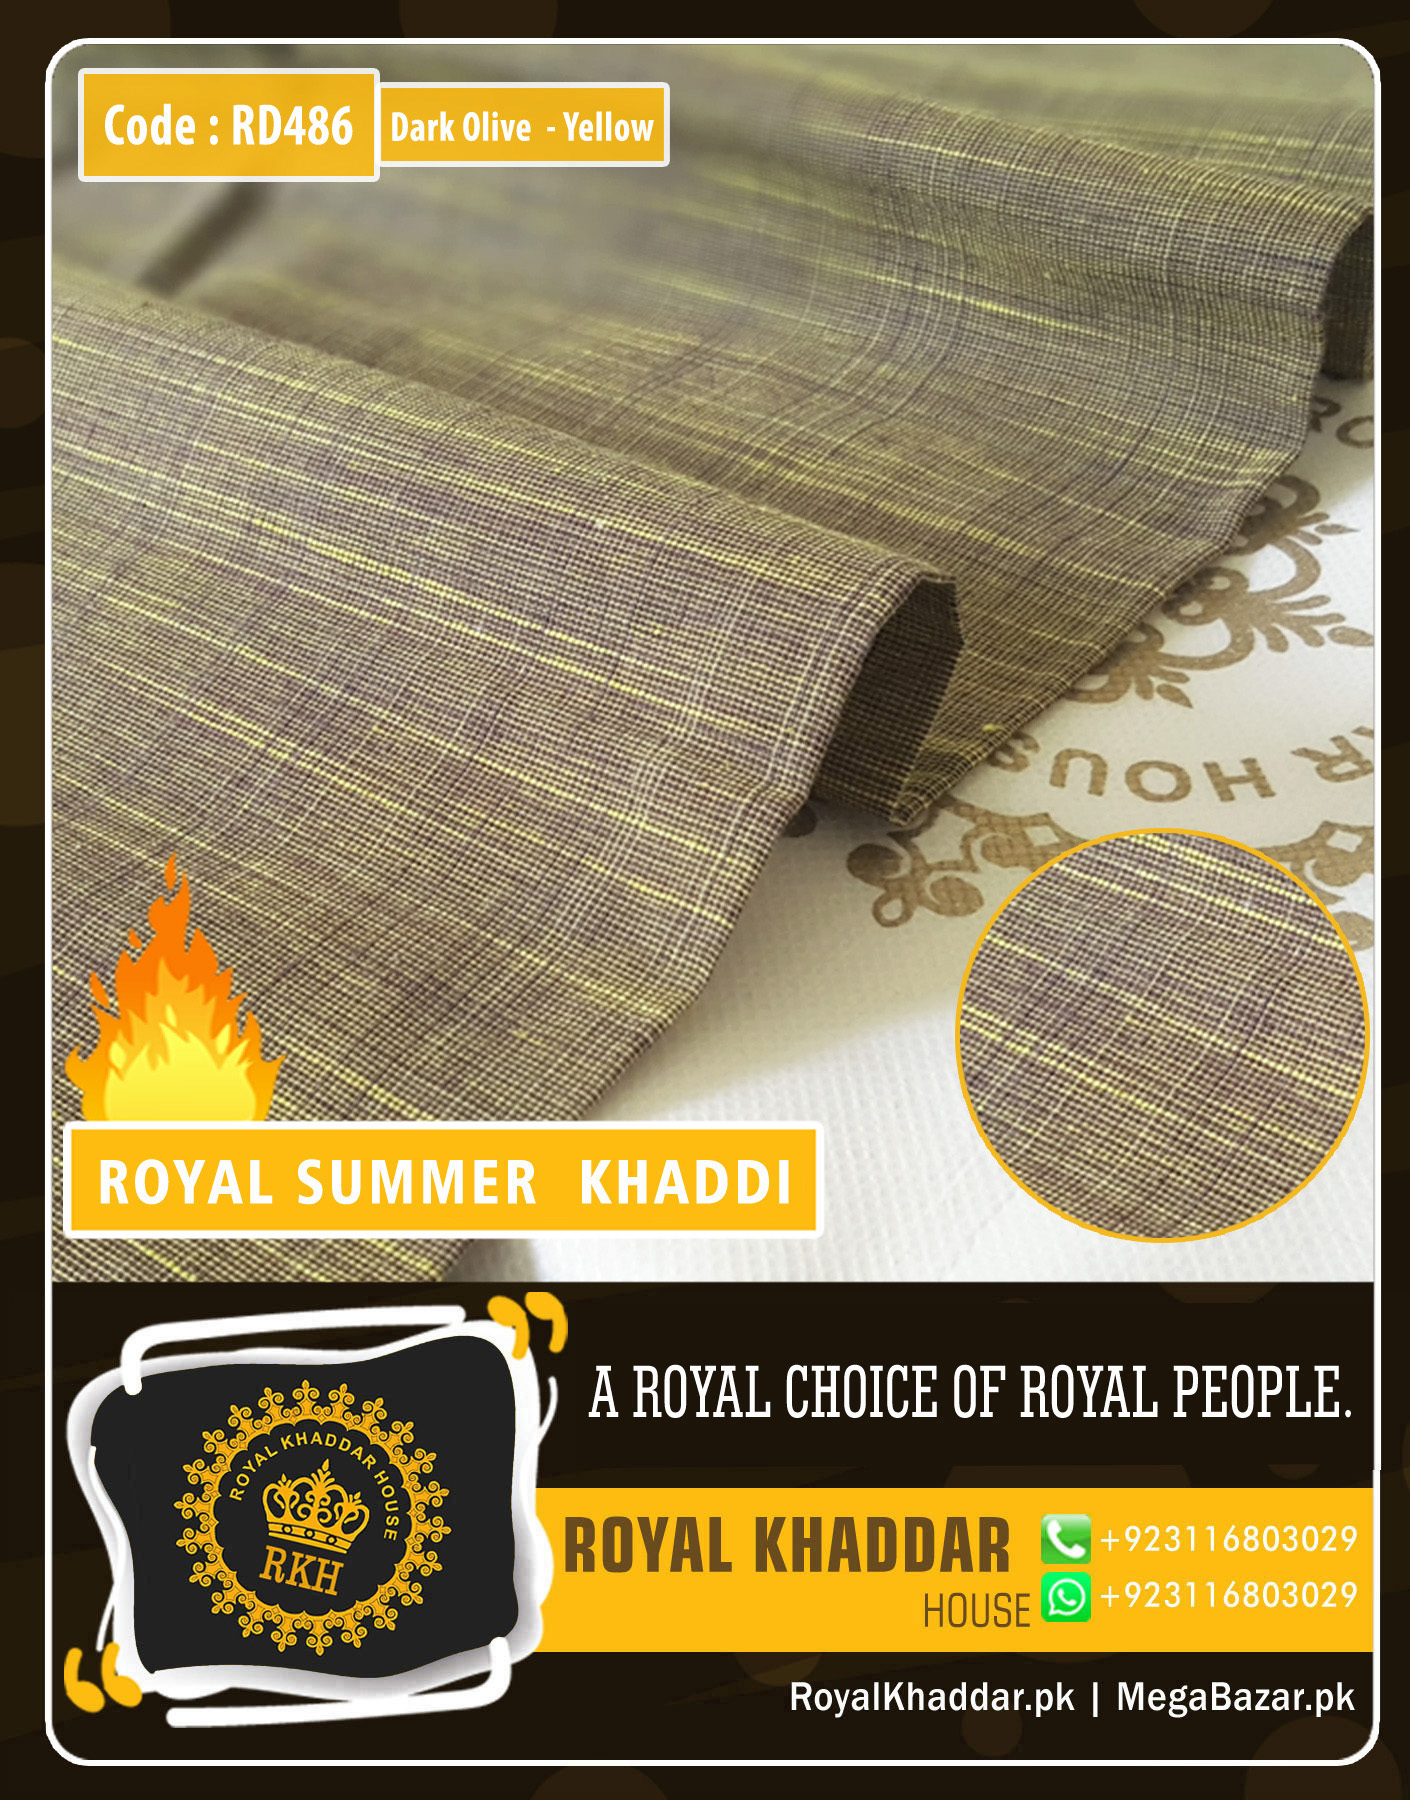 Yellow - Dark Olive Royal Summer Designer Khaddar RD486